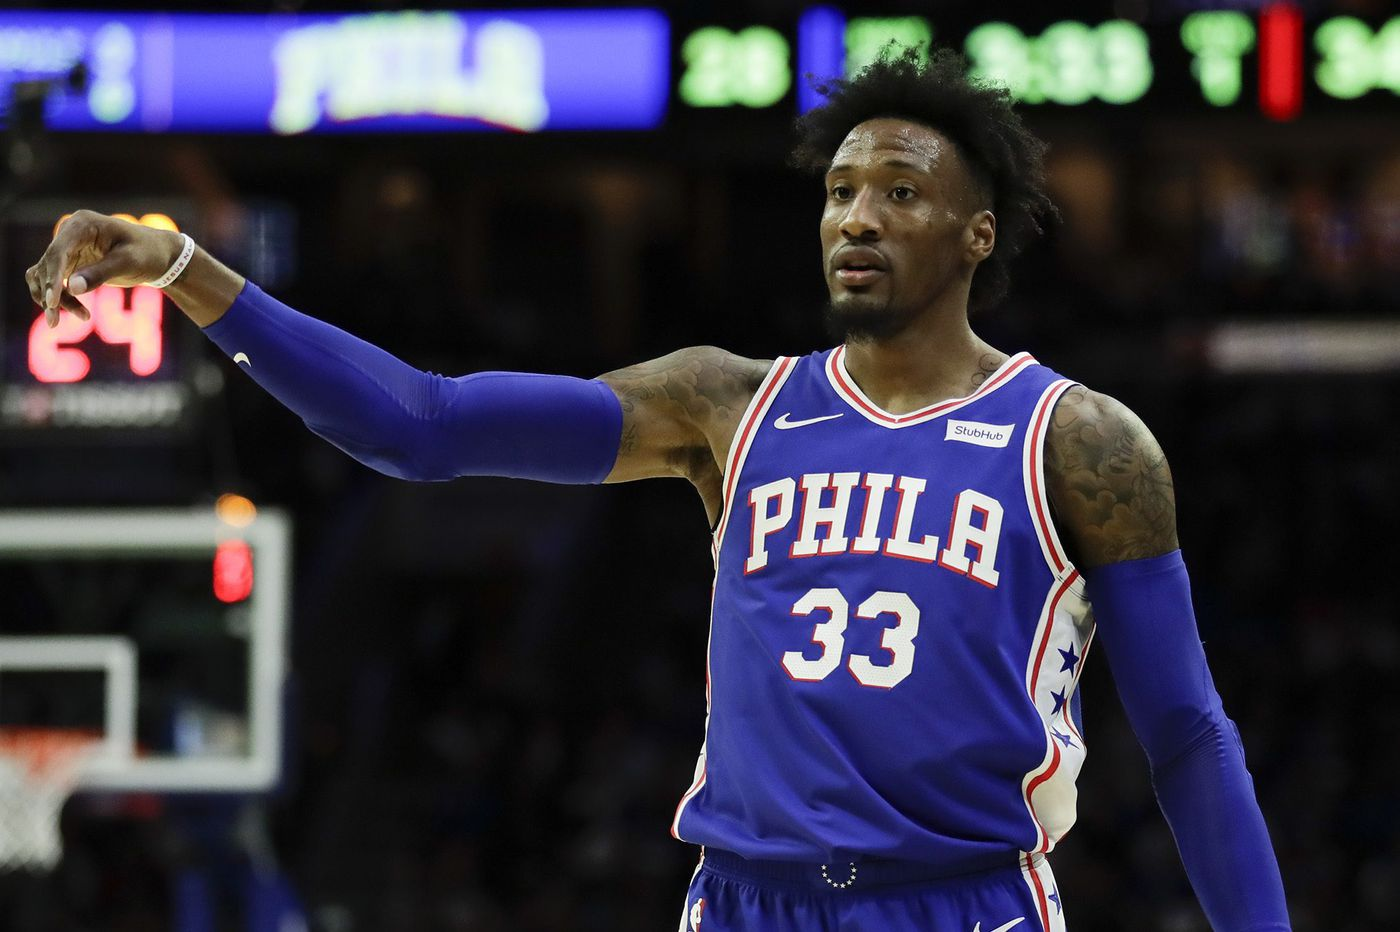 Jimmy Butler scores 14 points in losing Philadelphia 76ers debut